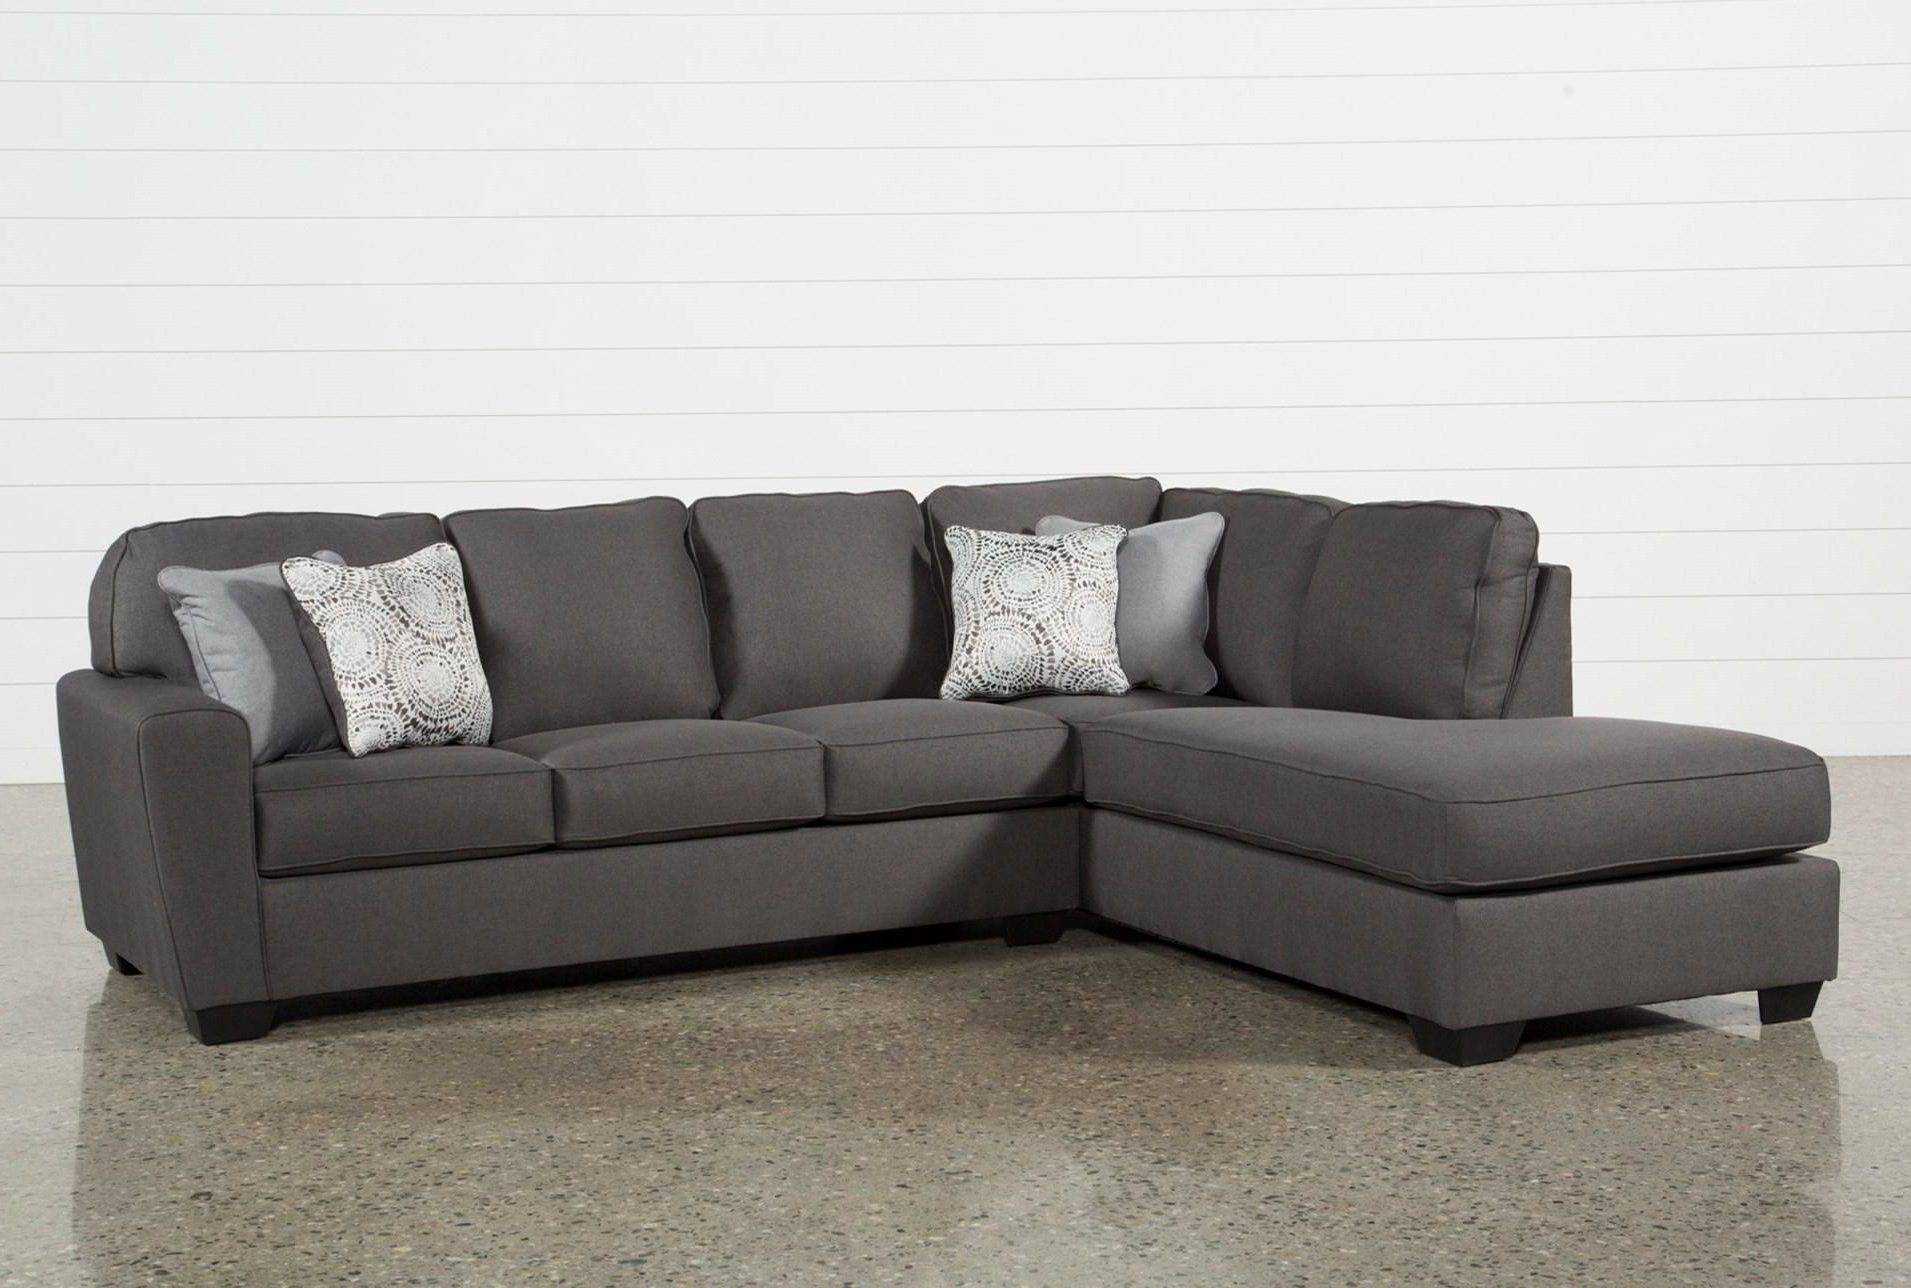 With So Many Ways To Lounge For Less, Our Mcdade Graphite 2 Piece Inside Well Liked Mcdade Ash Sofa Chairs (Gallery 7 of 20)